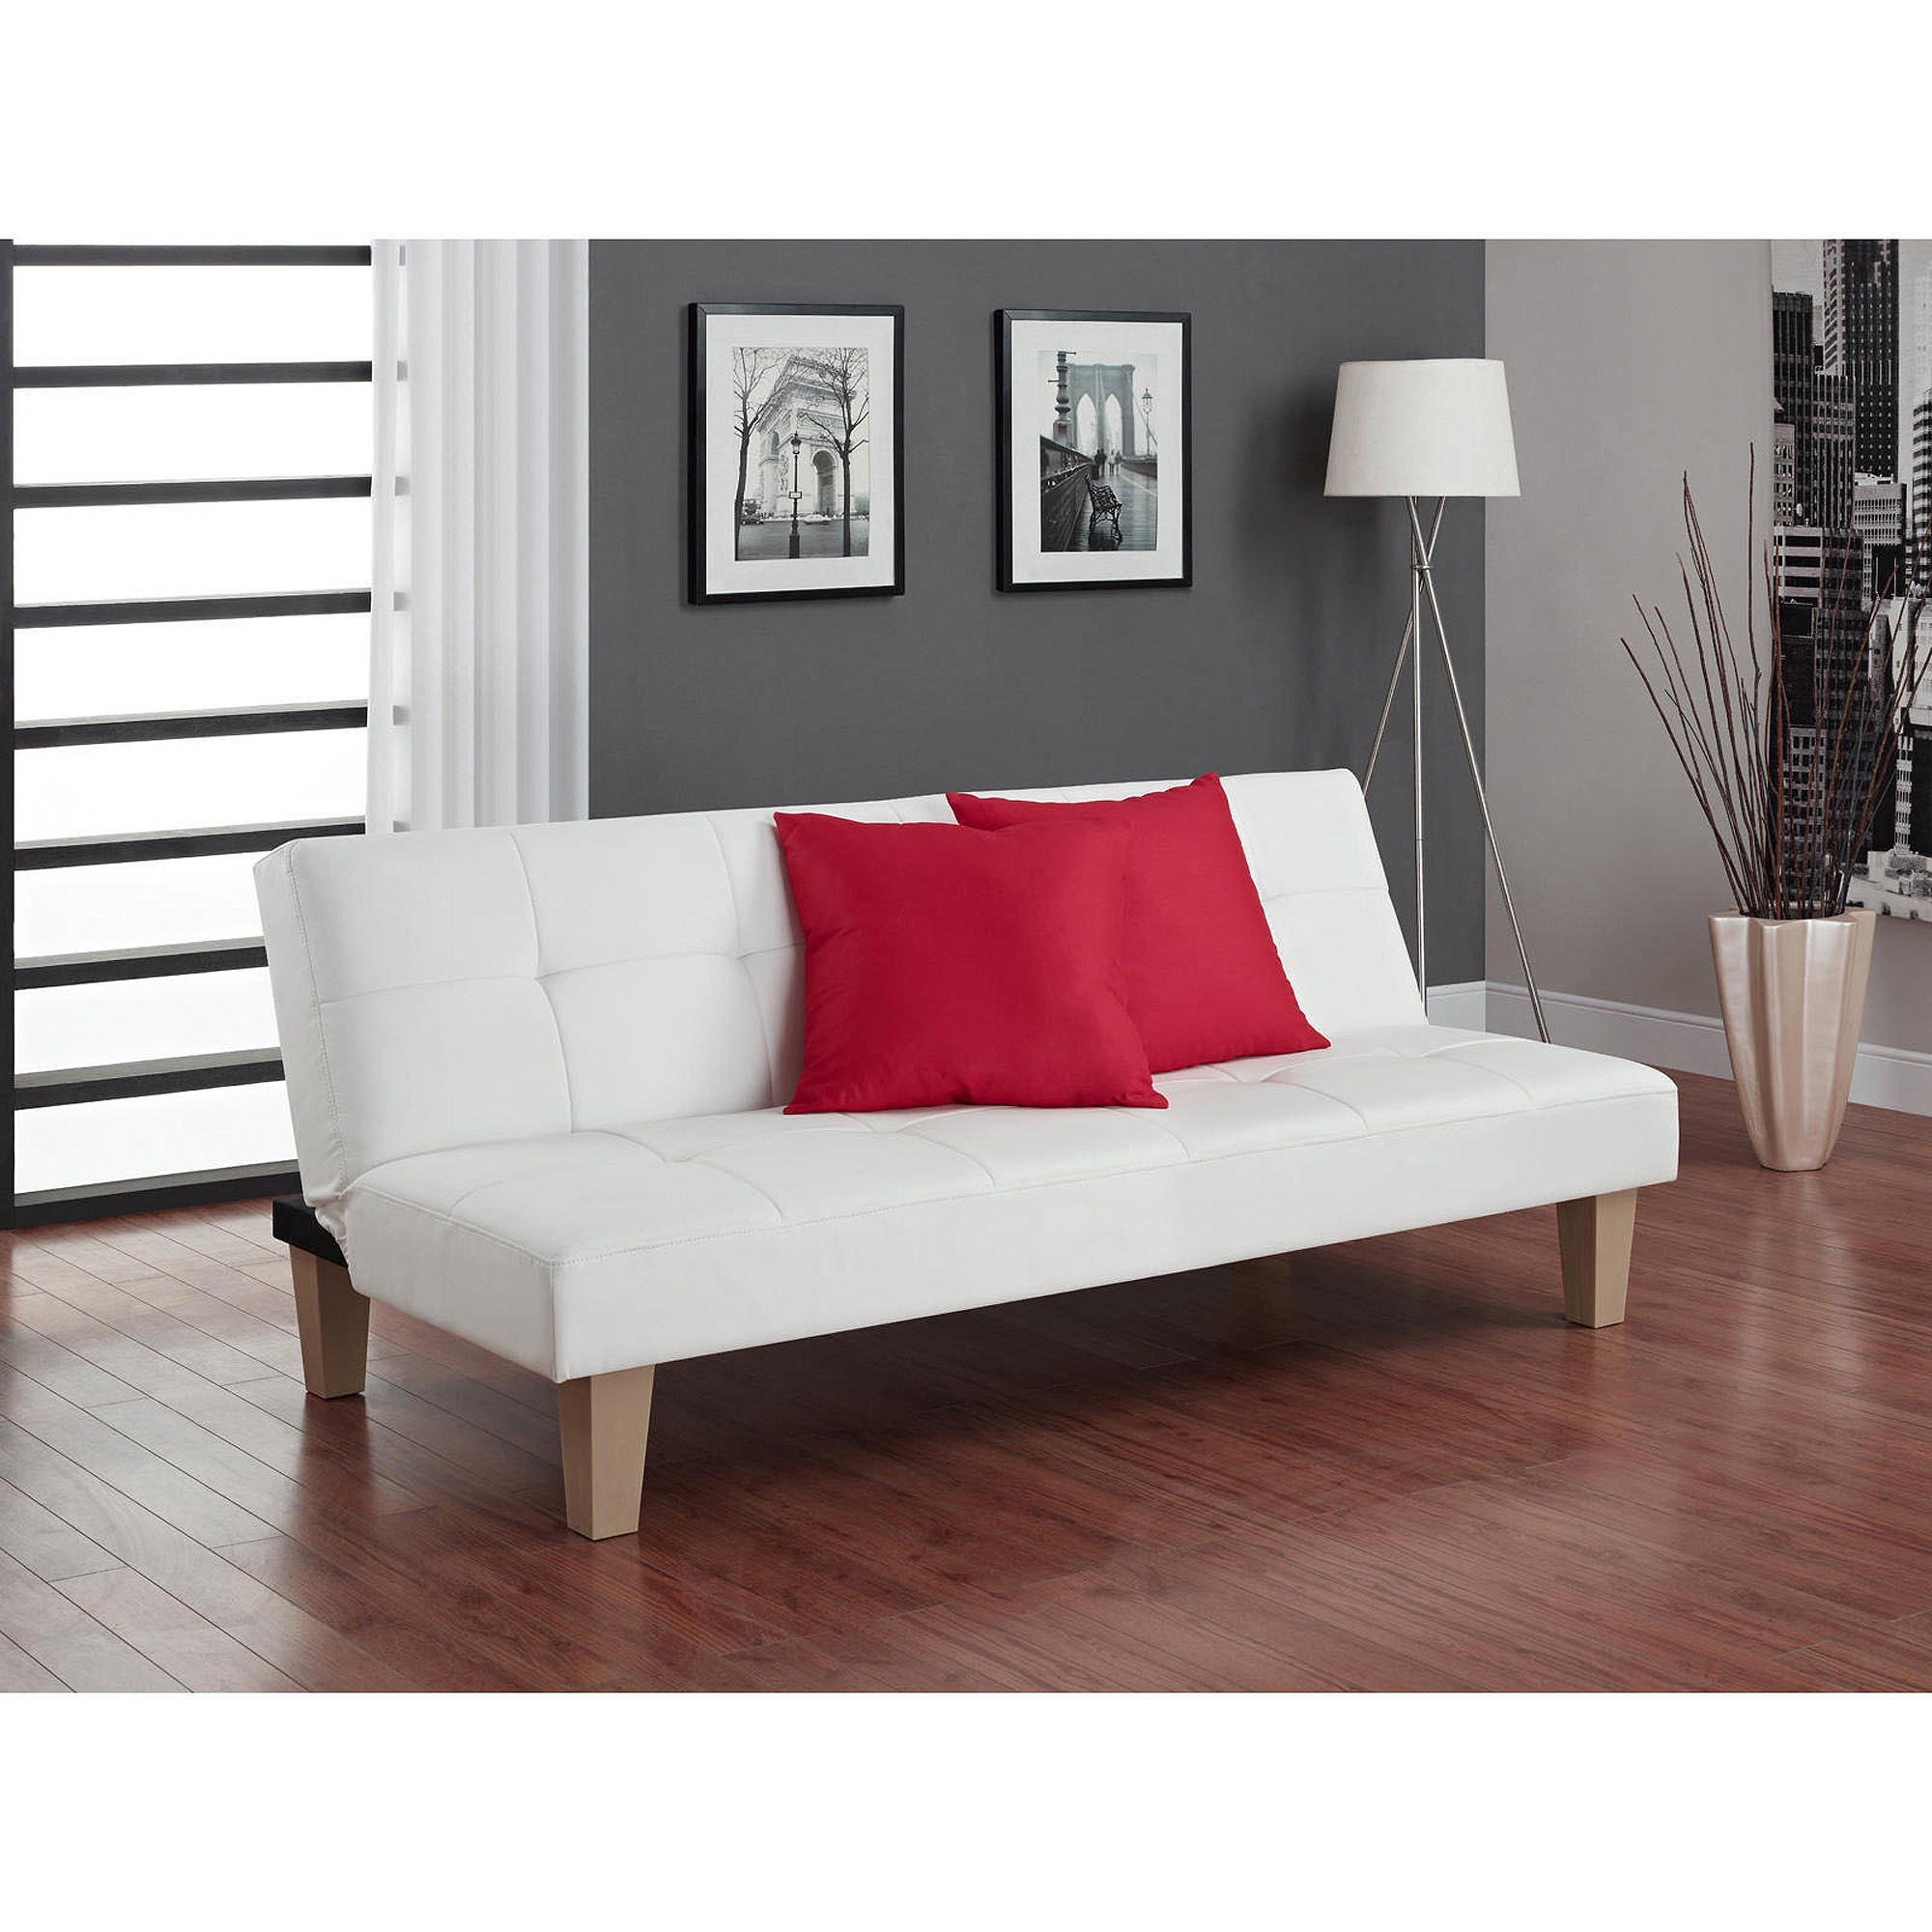 Lovely DHP Aria Futon Sofa Bed, White Faux Leather Upholstery